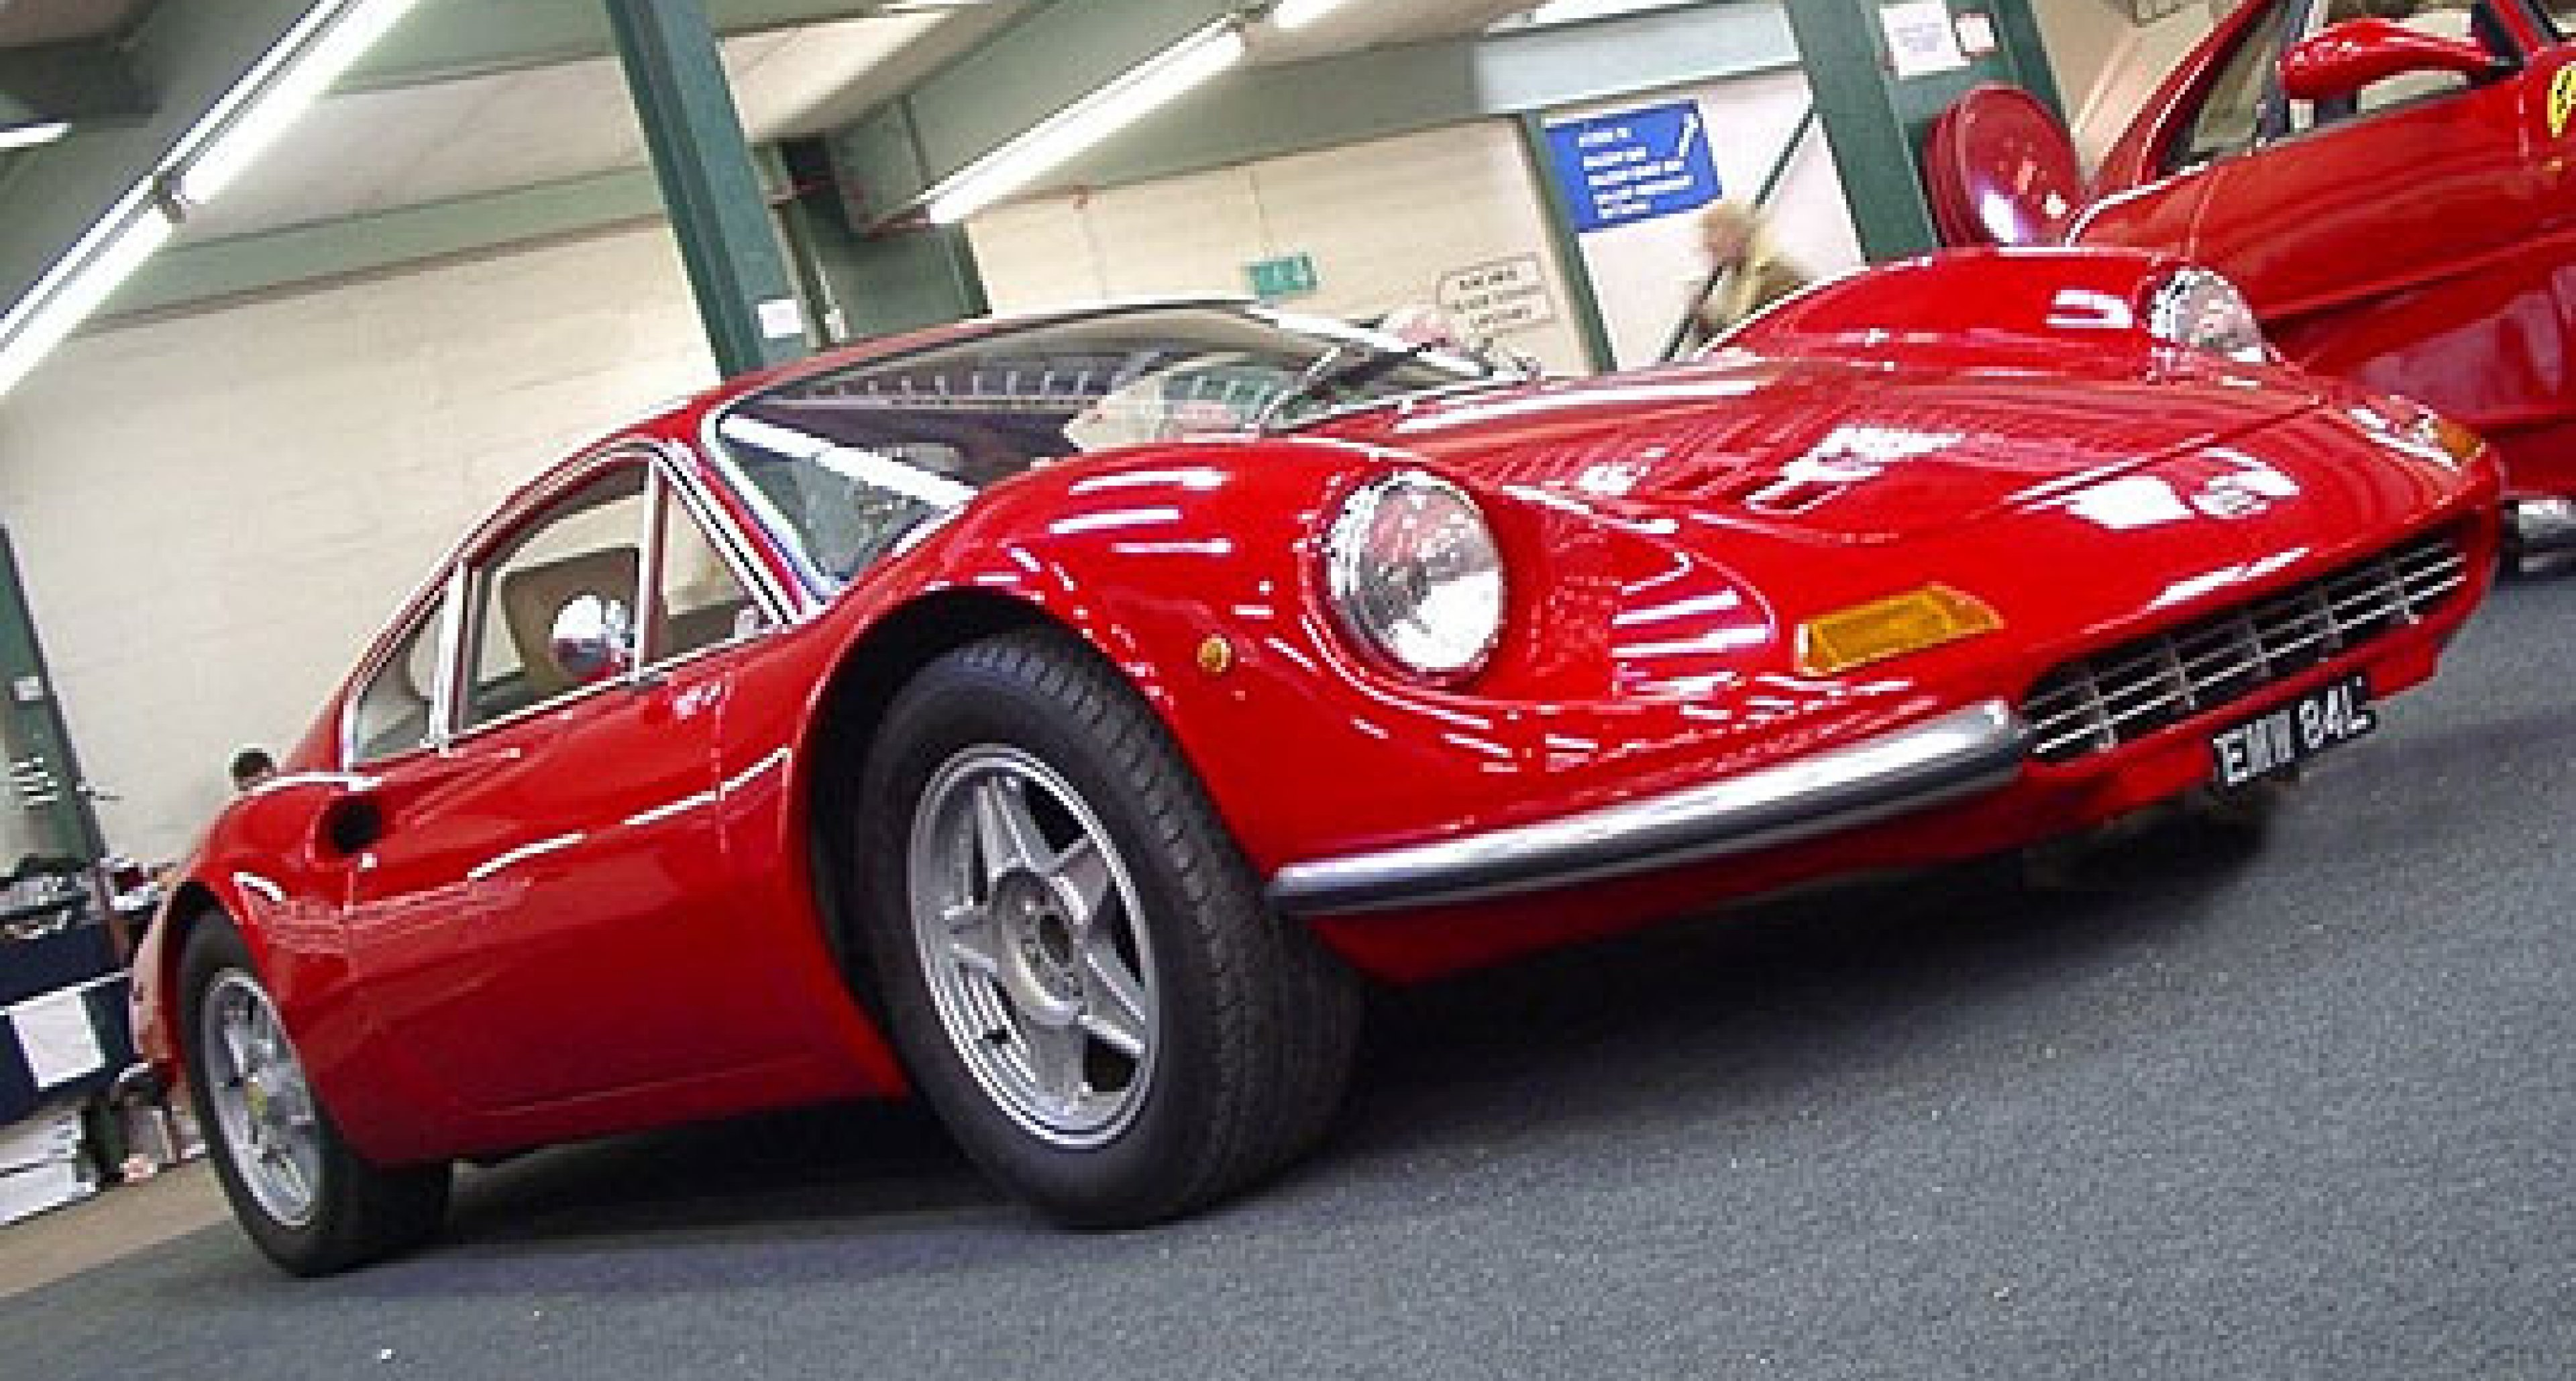 The Classic Motor Show 2006